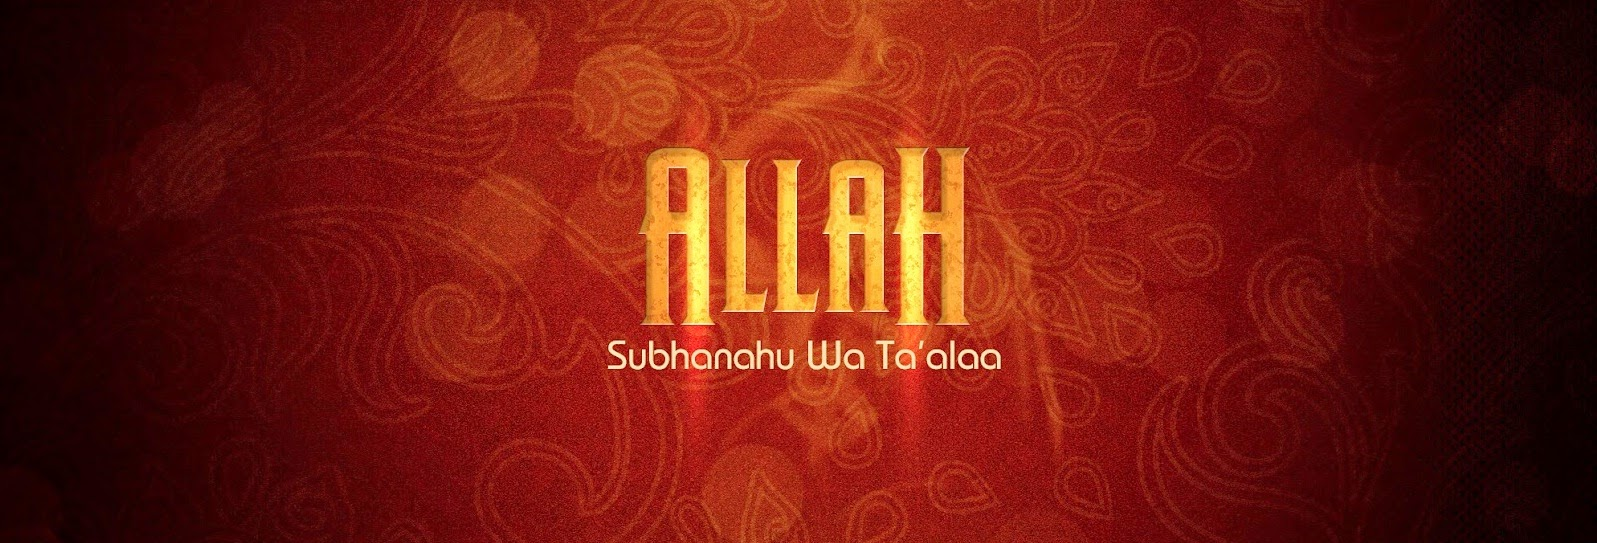 Islamic facebook cover - Facebook covers with Allah names